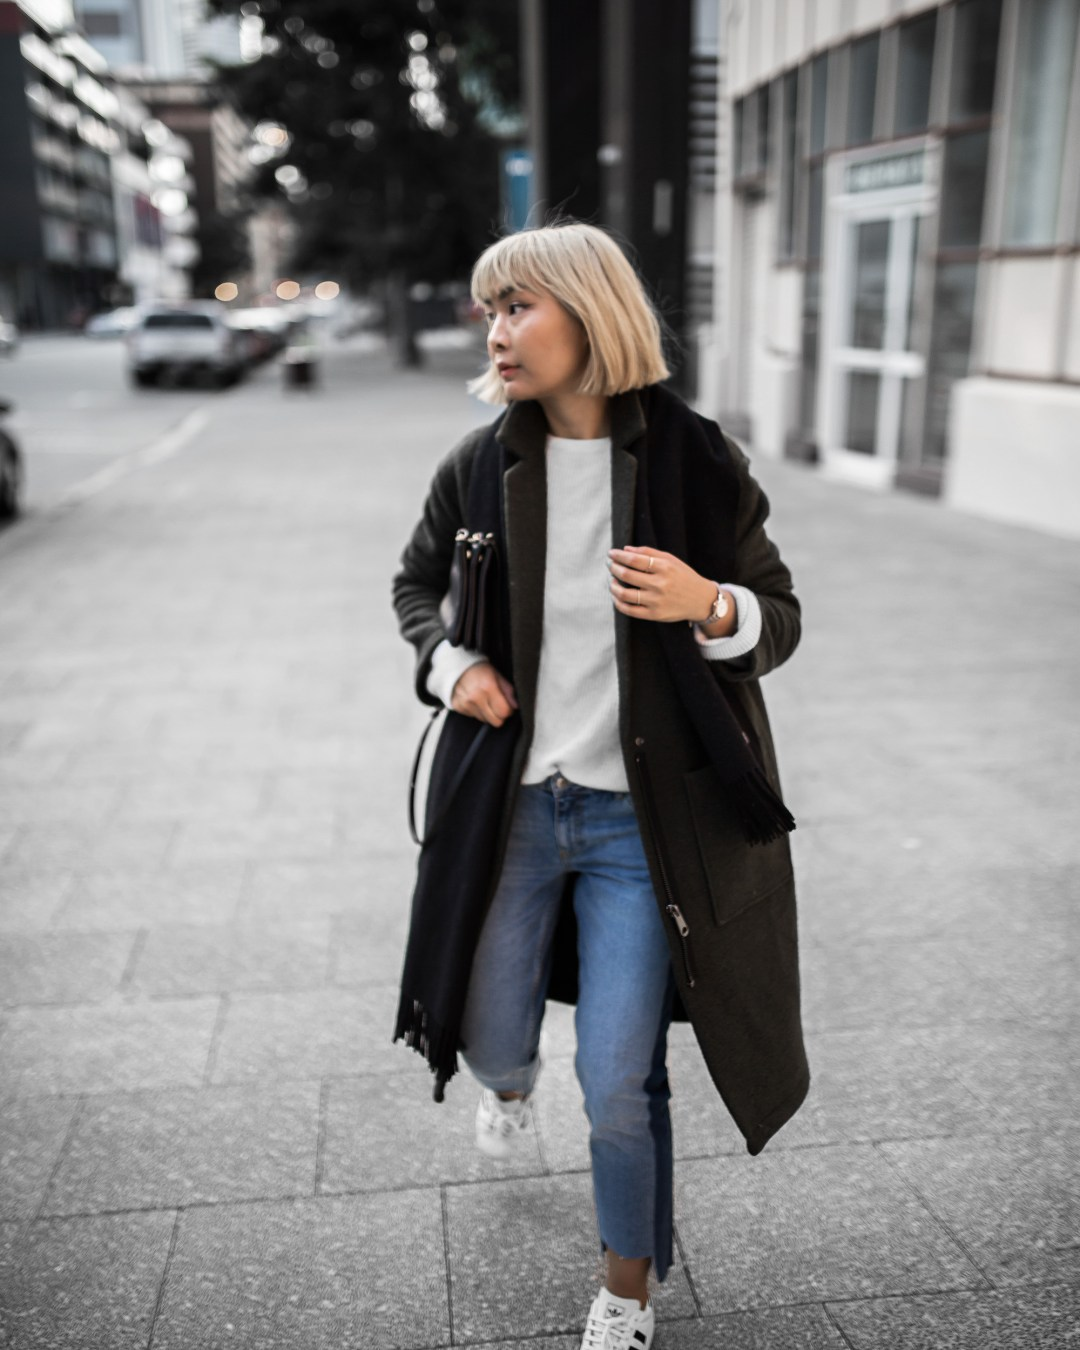 acne-scarf-khaki-coat-stepped-hem-jeans-outfit-inspiration-4-copy